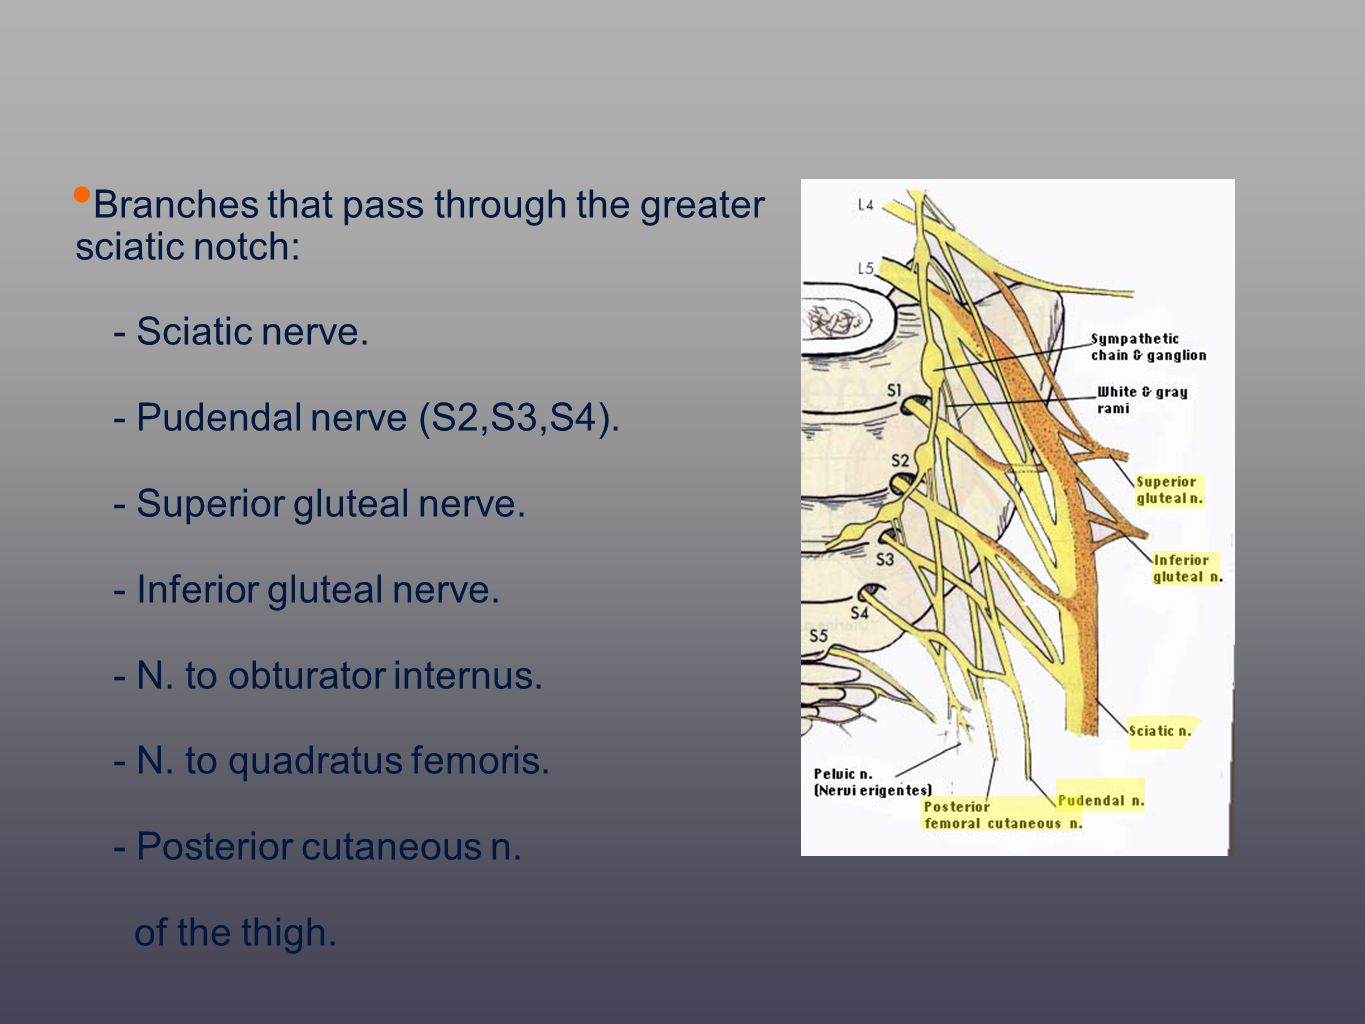 Branches that pass through the greater sciatic notch: